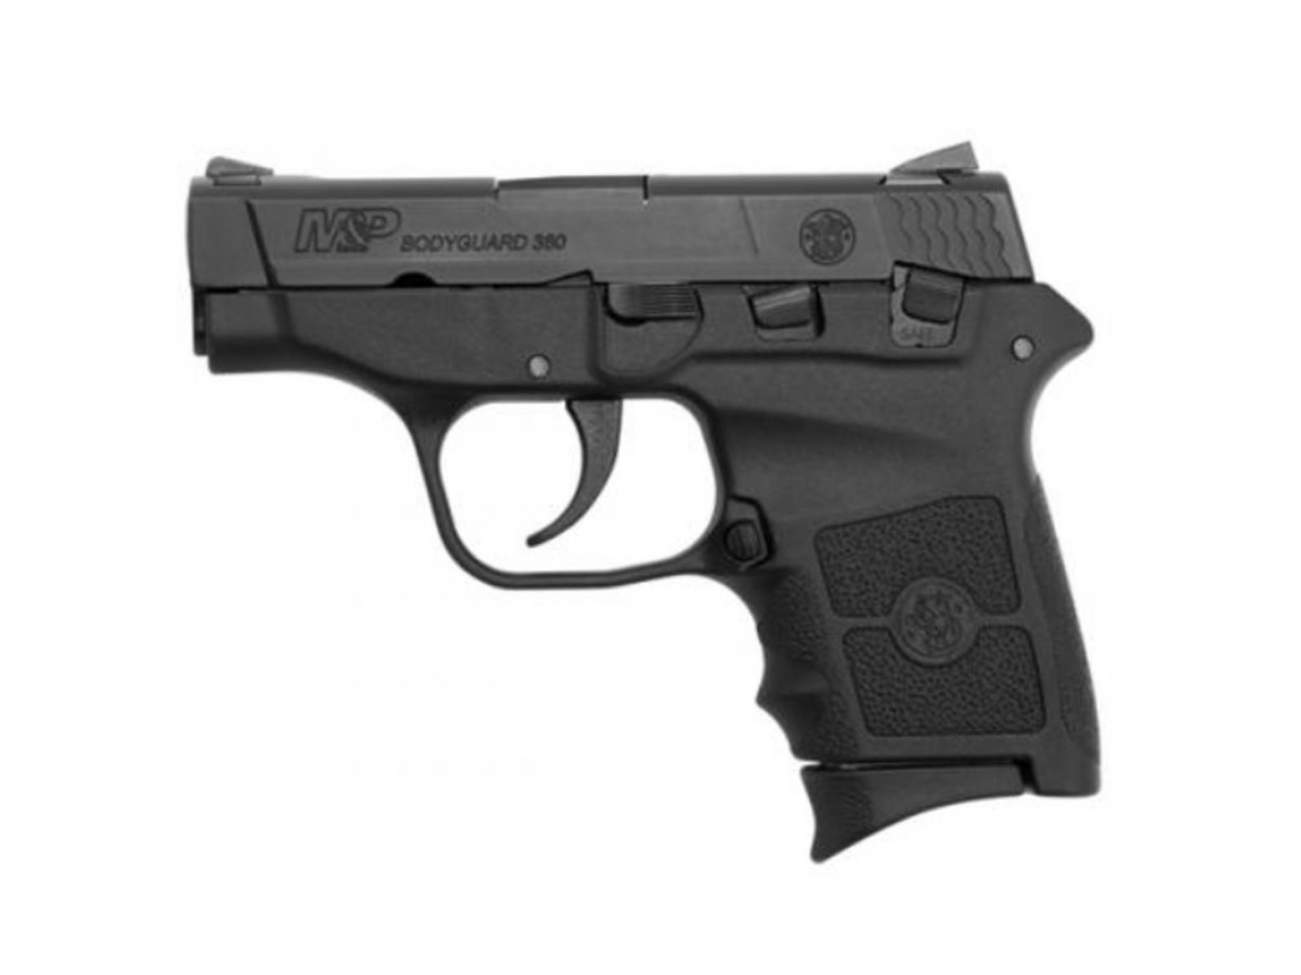 Why Smith & Wesson's M&P Bodyguard .380 Is an Excellent Compact Gun